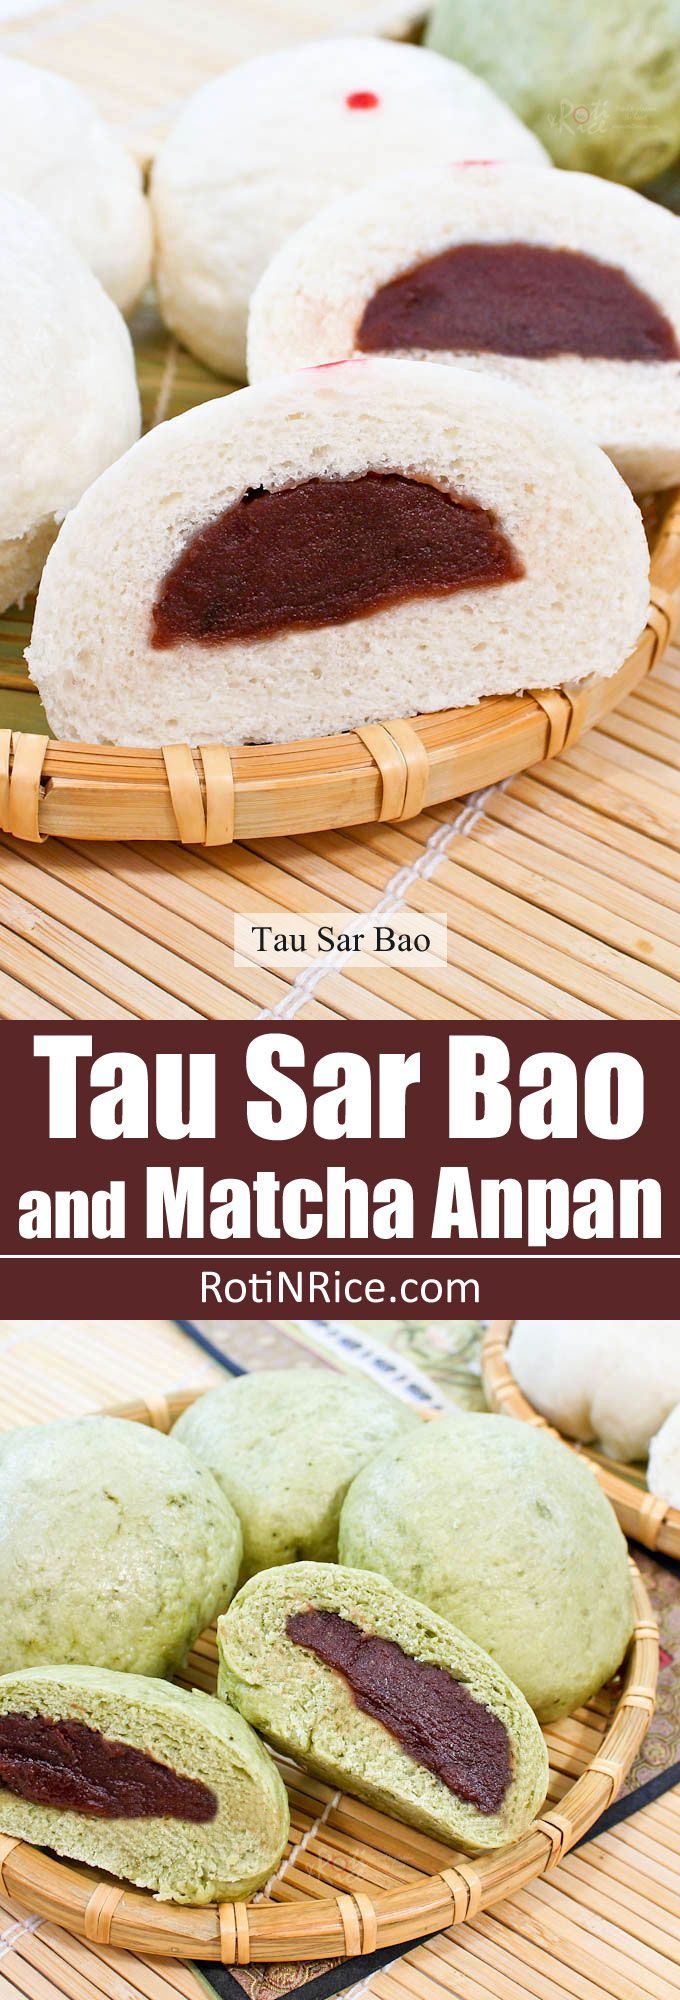 Soft, white Tau Sar Bao with red bean paste filling makes a delicious breakfast or snack. Add some powdered green tea to make Matcha Anpan. | RotiNRice.com